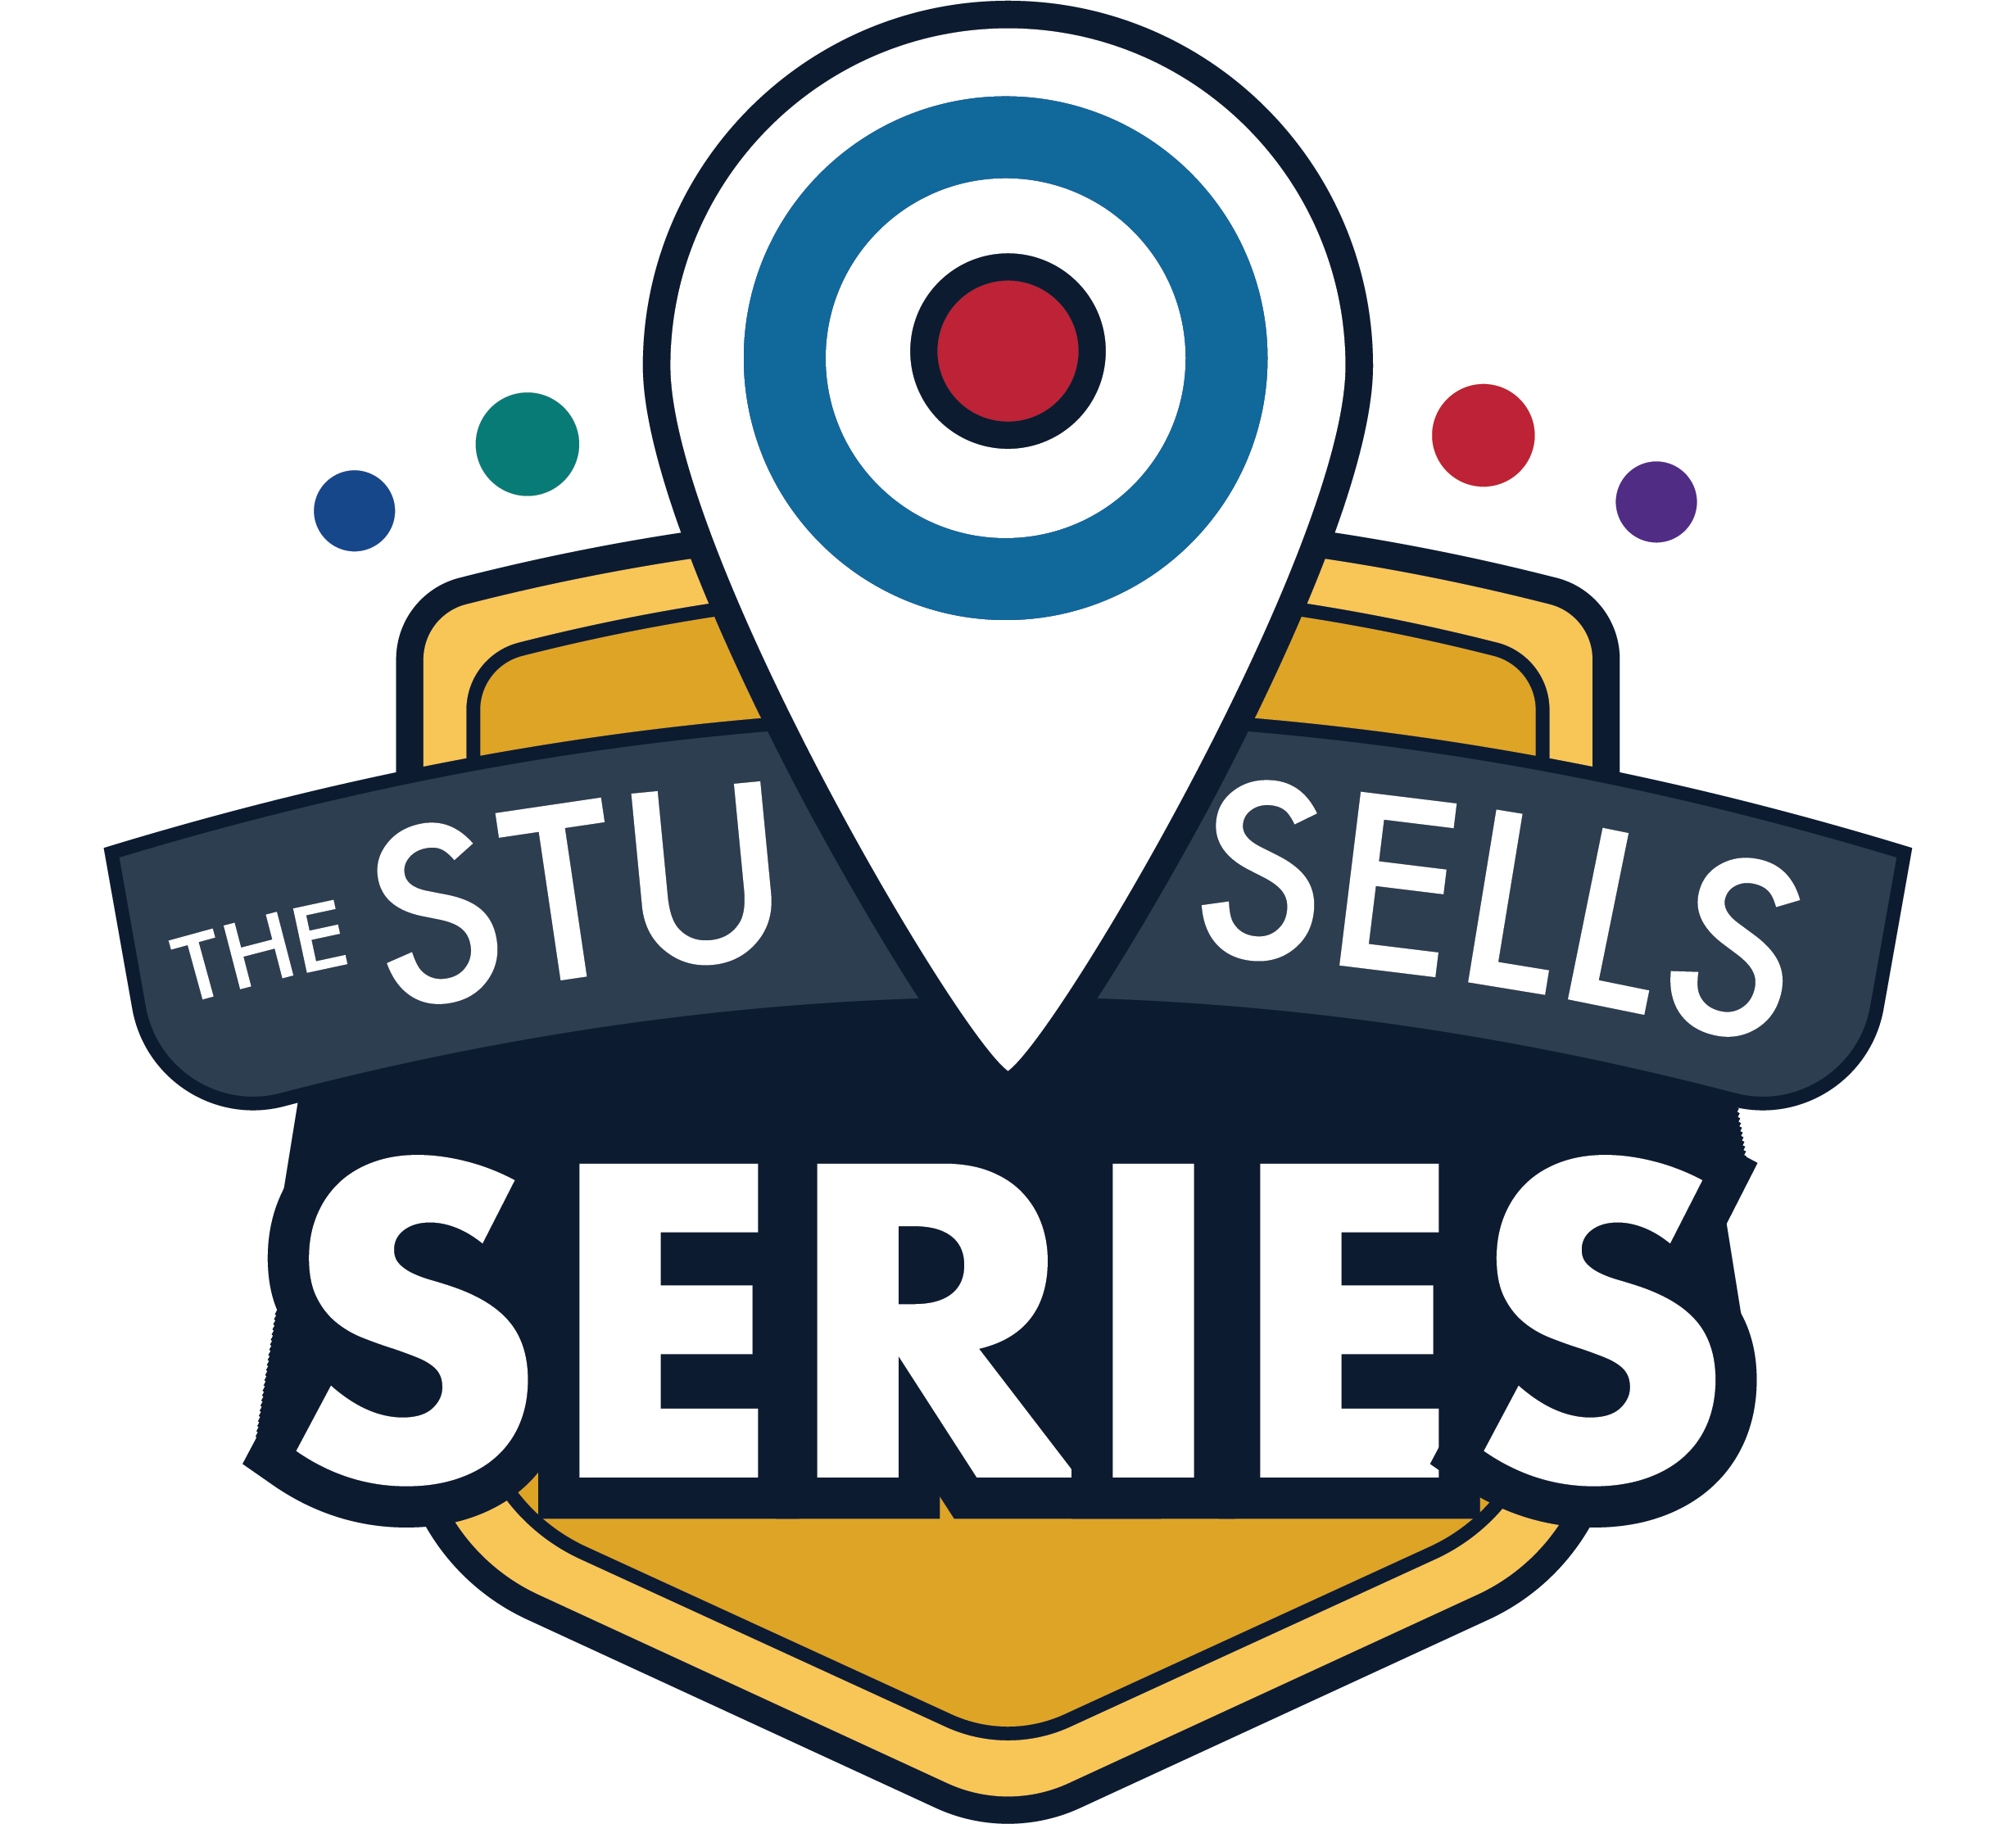 Stu Sells Series Logo